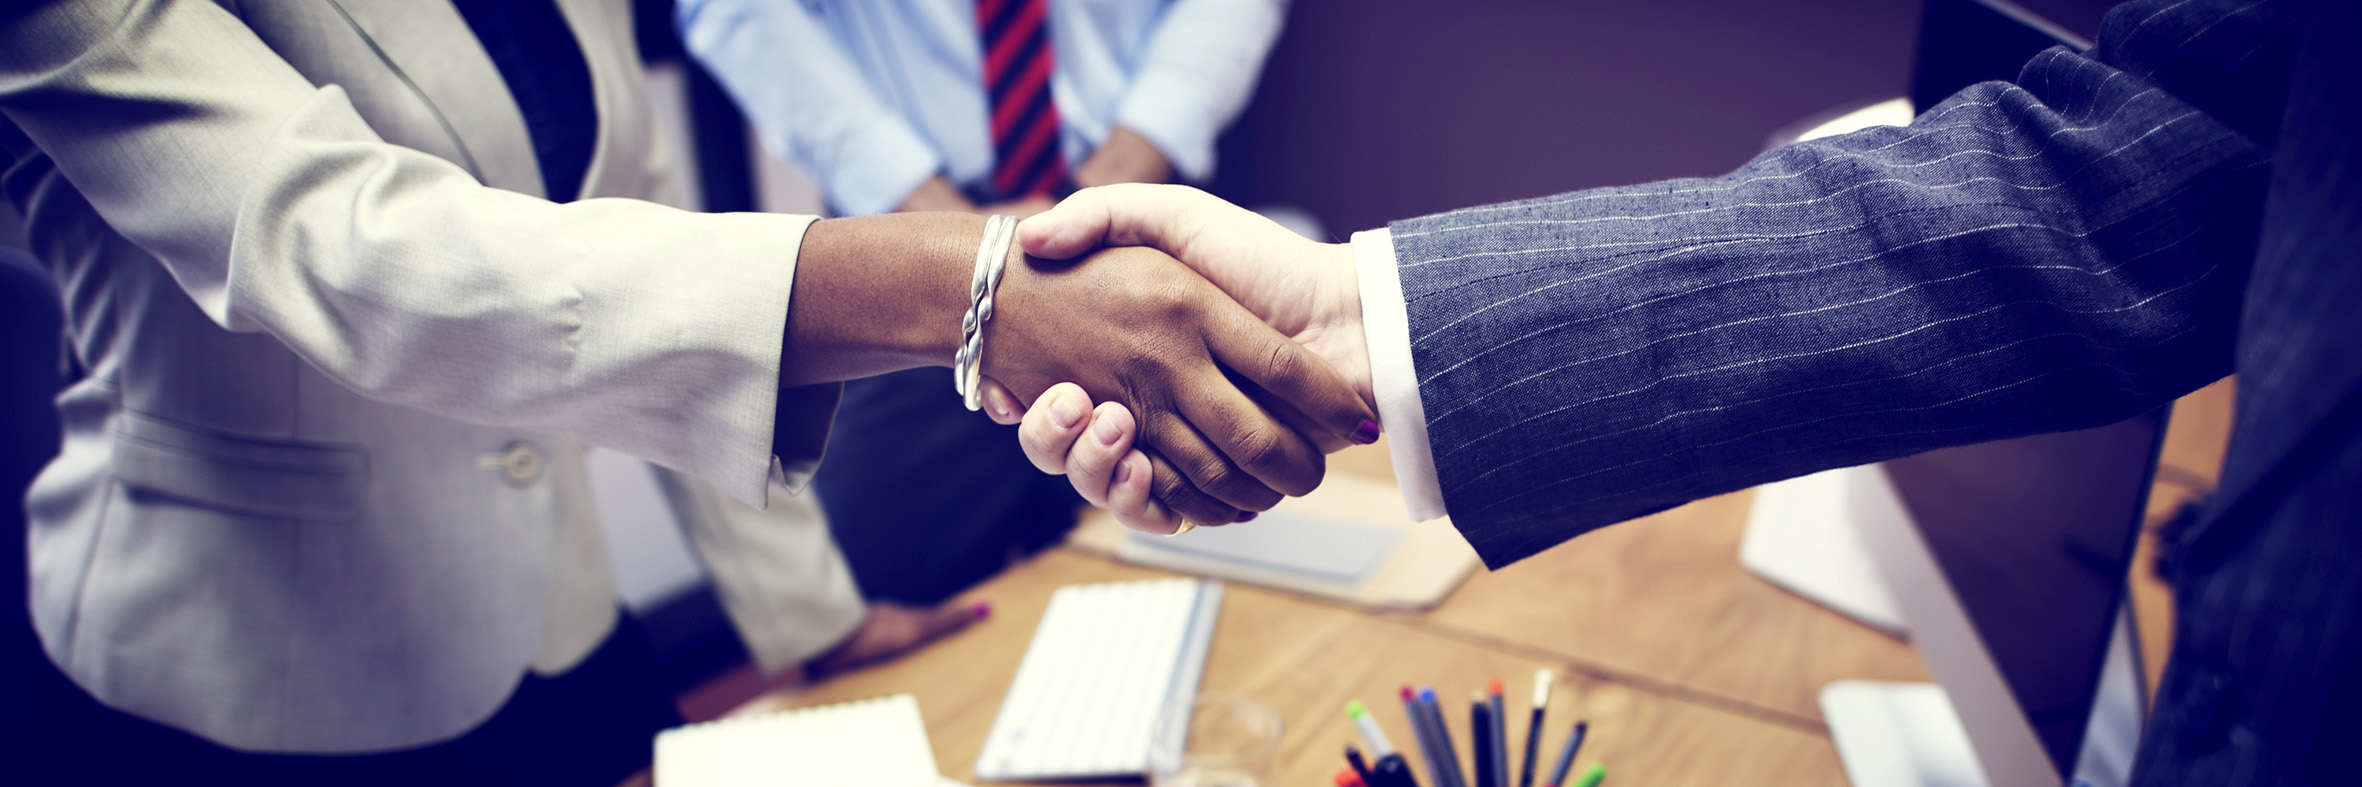 A strategic partnership: what role for pharma in a changing NHS?